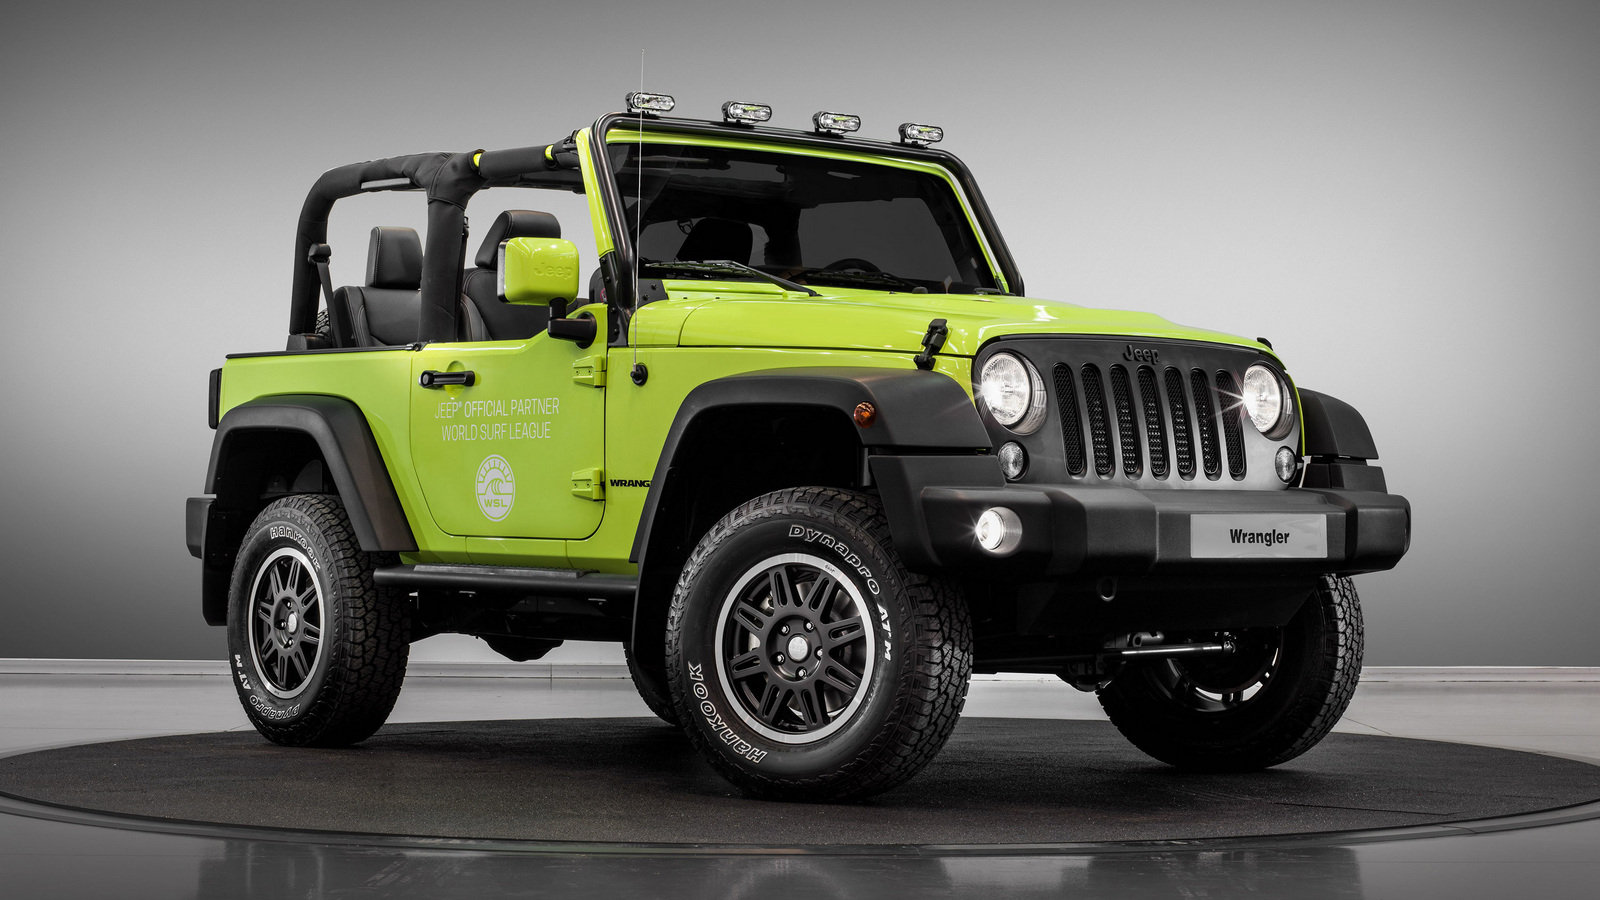 2017 jeep wrangler rubicon with moparone pack review gallery top speed. Black Bedroom Furniture Sets. Home Design Ideas